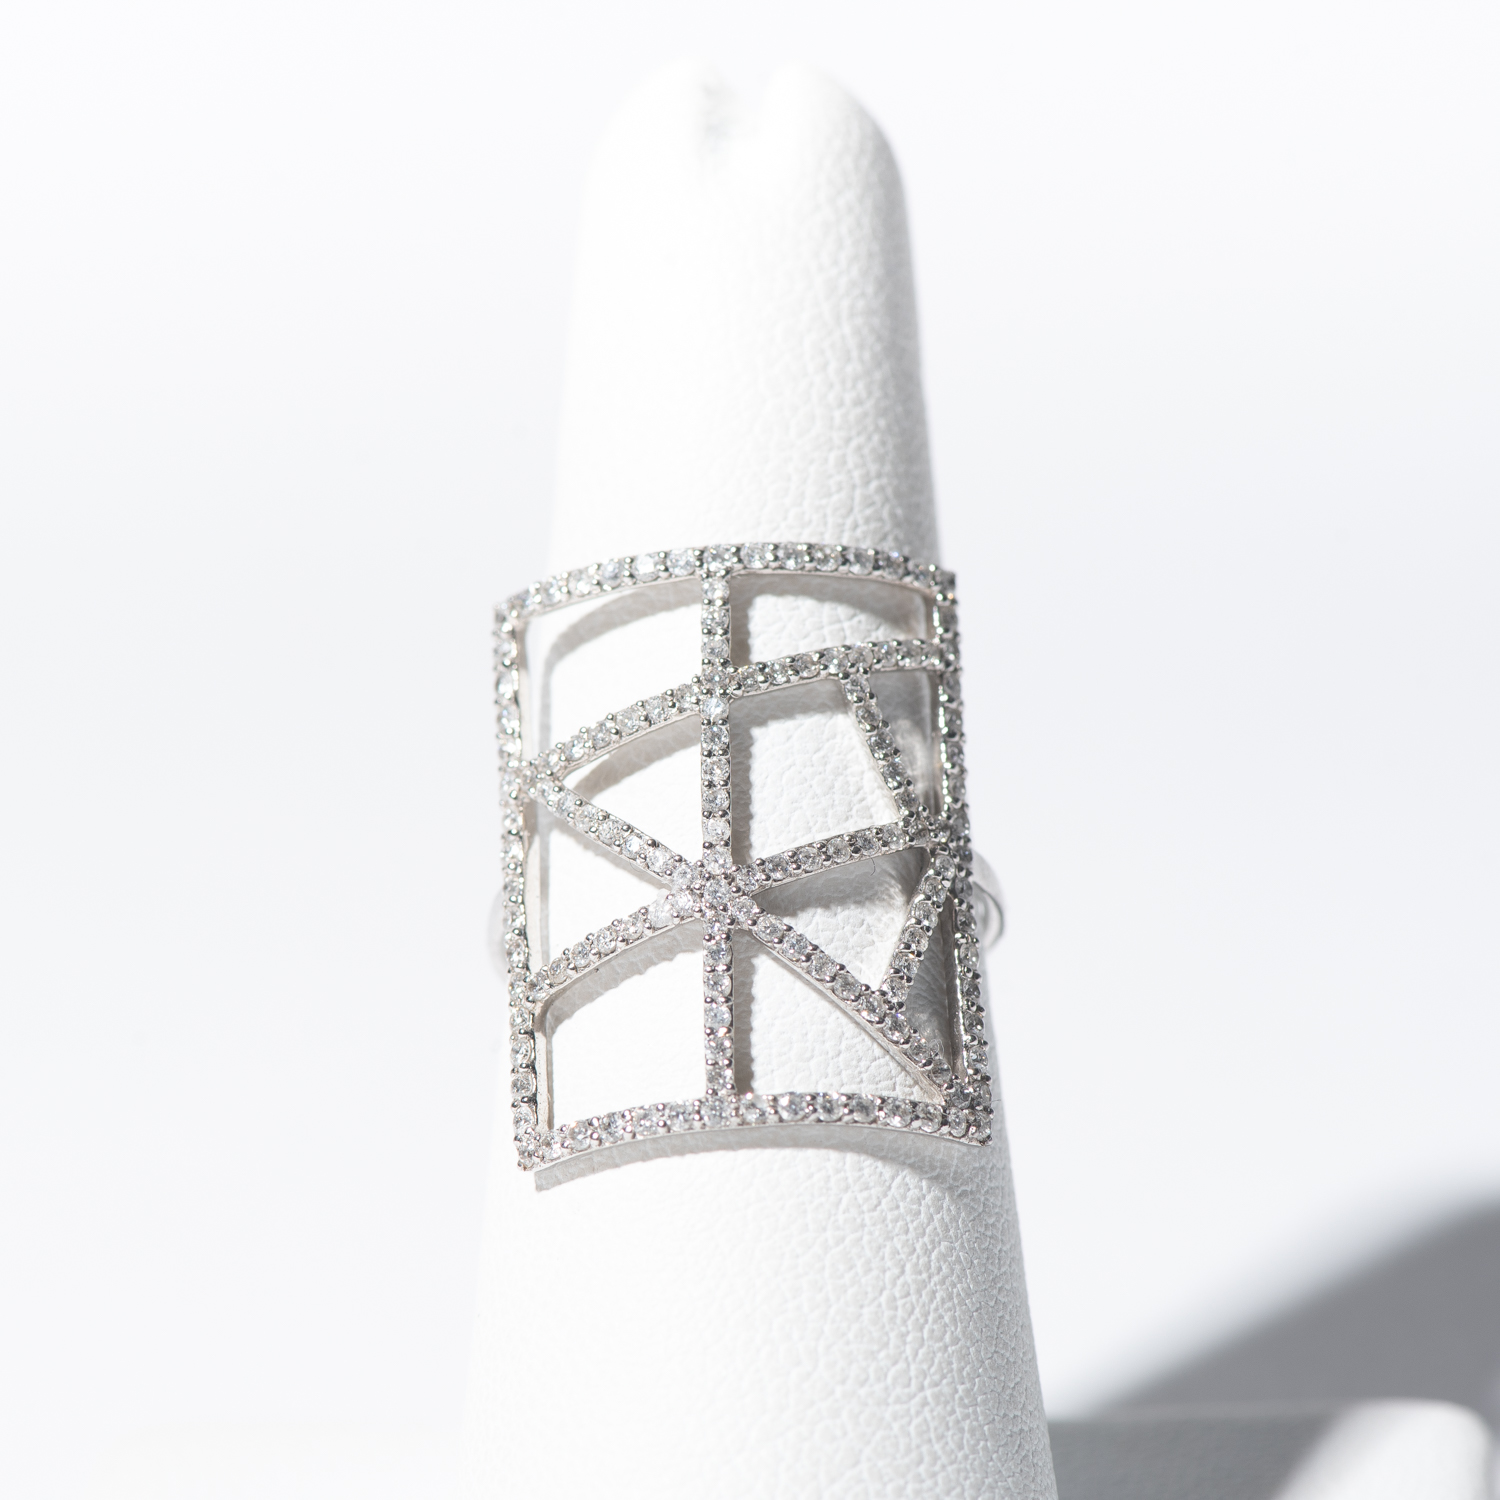 Design Twenty Six.  - 14K White Gold Geometric Diamond Ring